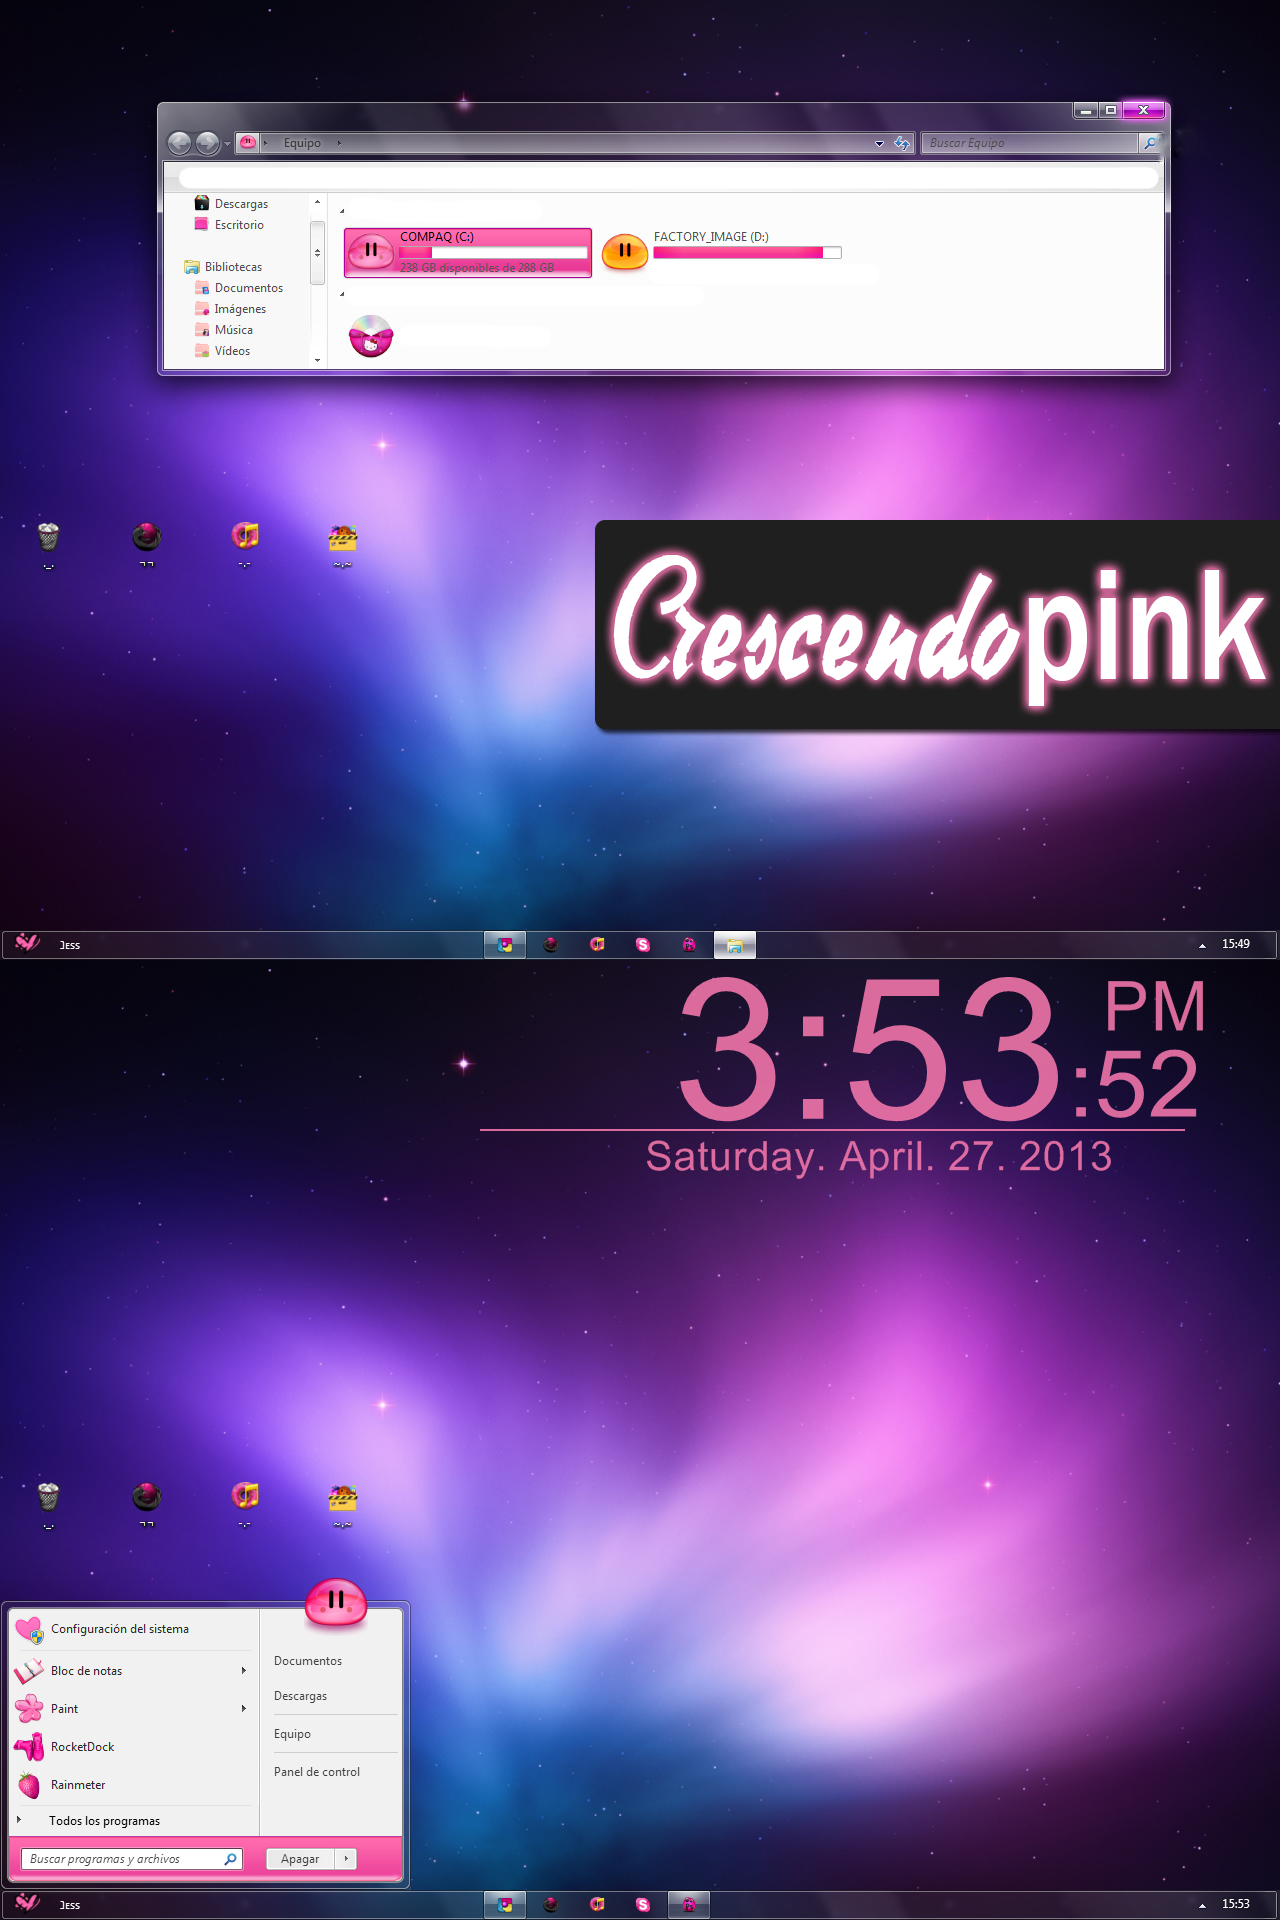 [����] Crescendo PINK [ Windows 7 / 2013 ]